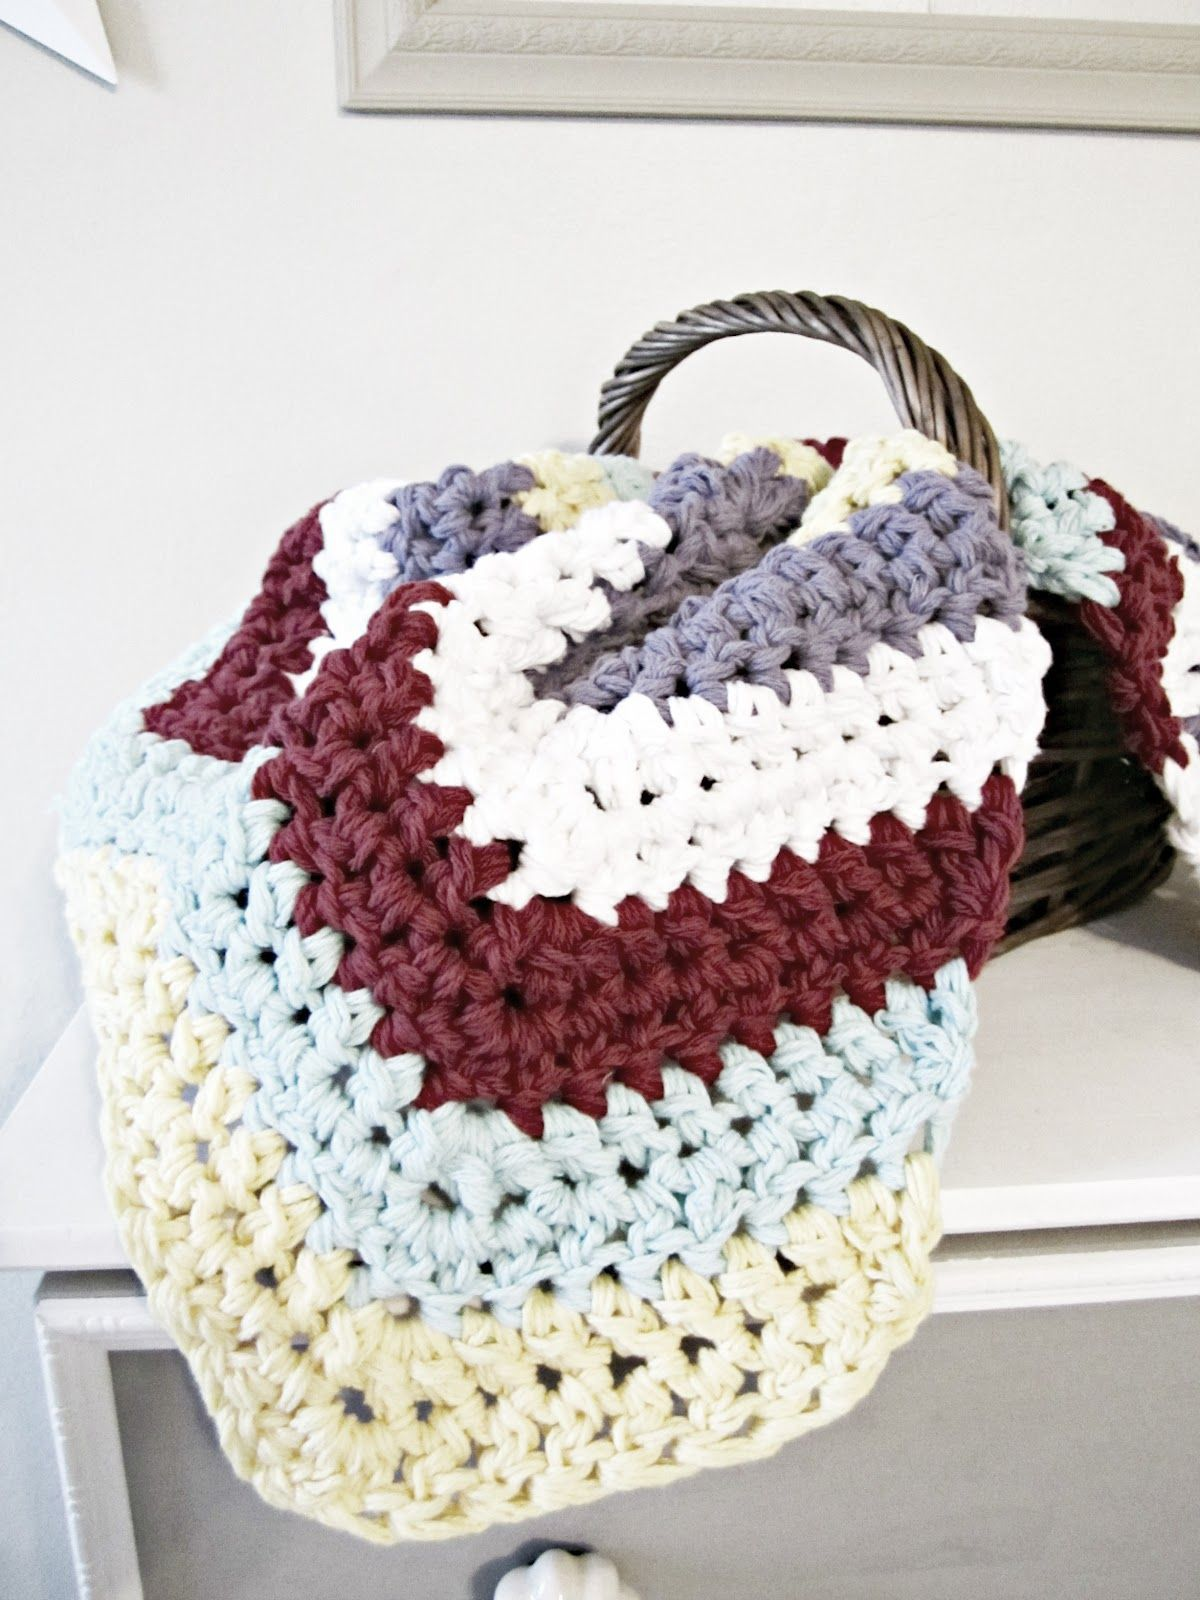 Chunky chevron blanket pattern-Q hook-4 strands together-nts:see crochet